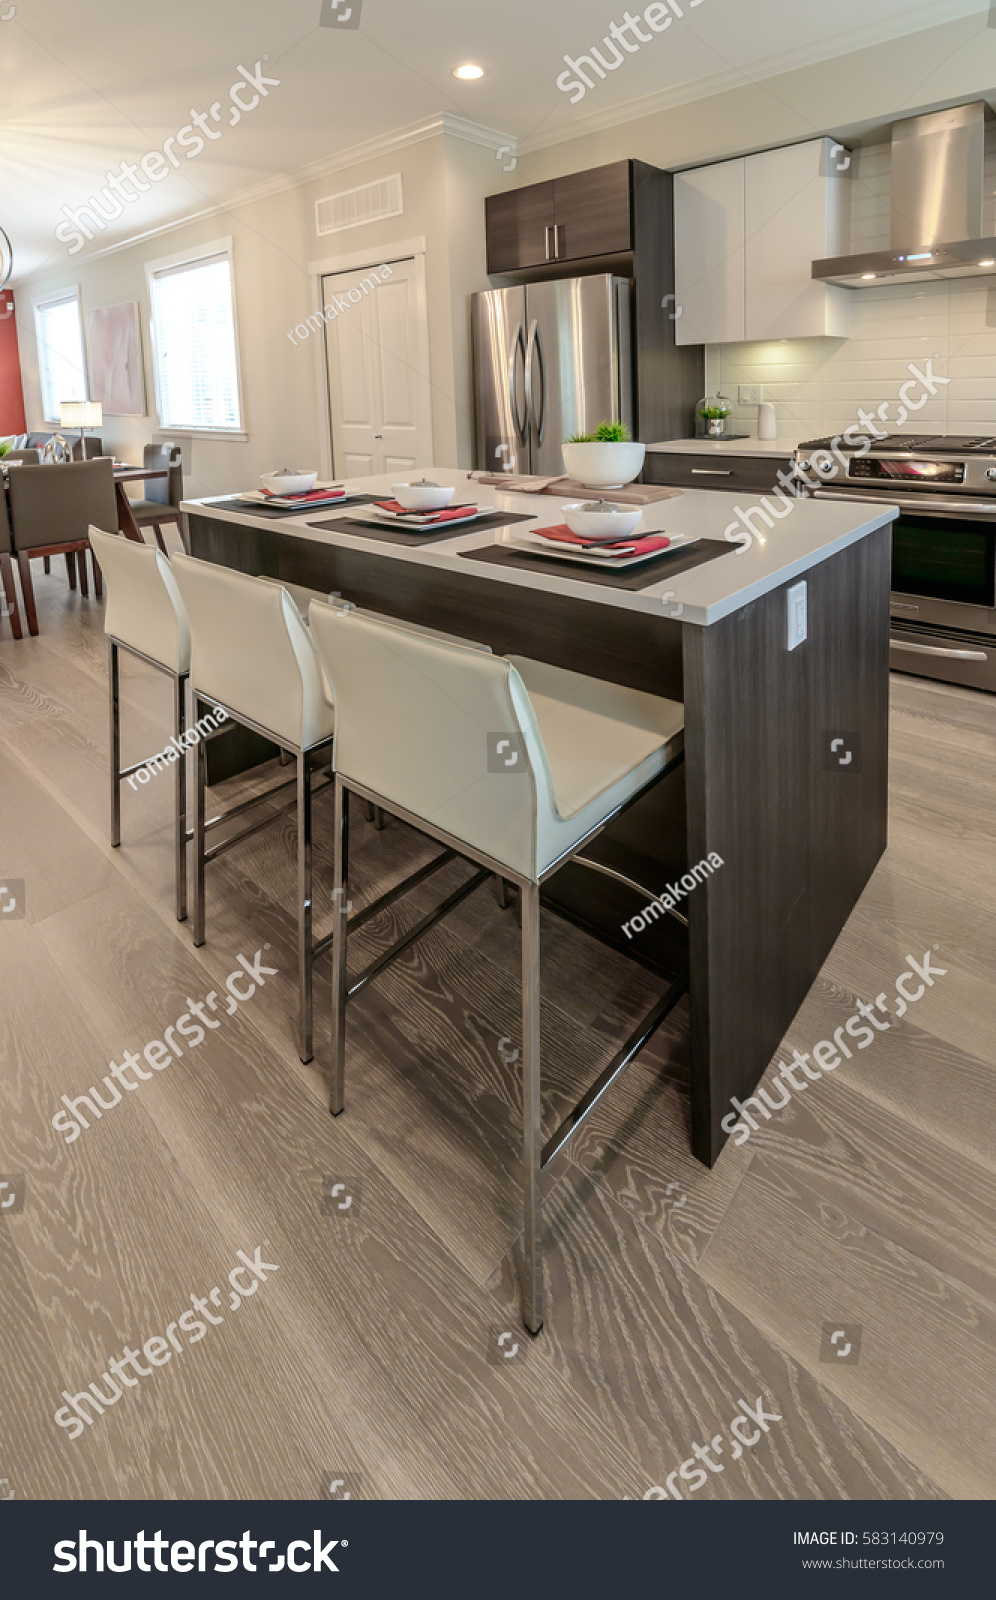 stock photo nicely decorated kitchen counter table iceland table and dining table and living room at the back 583140979